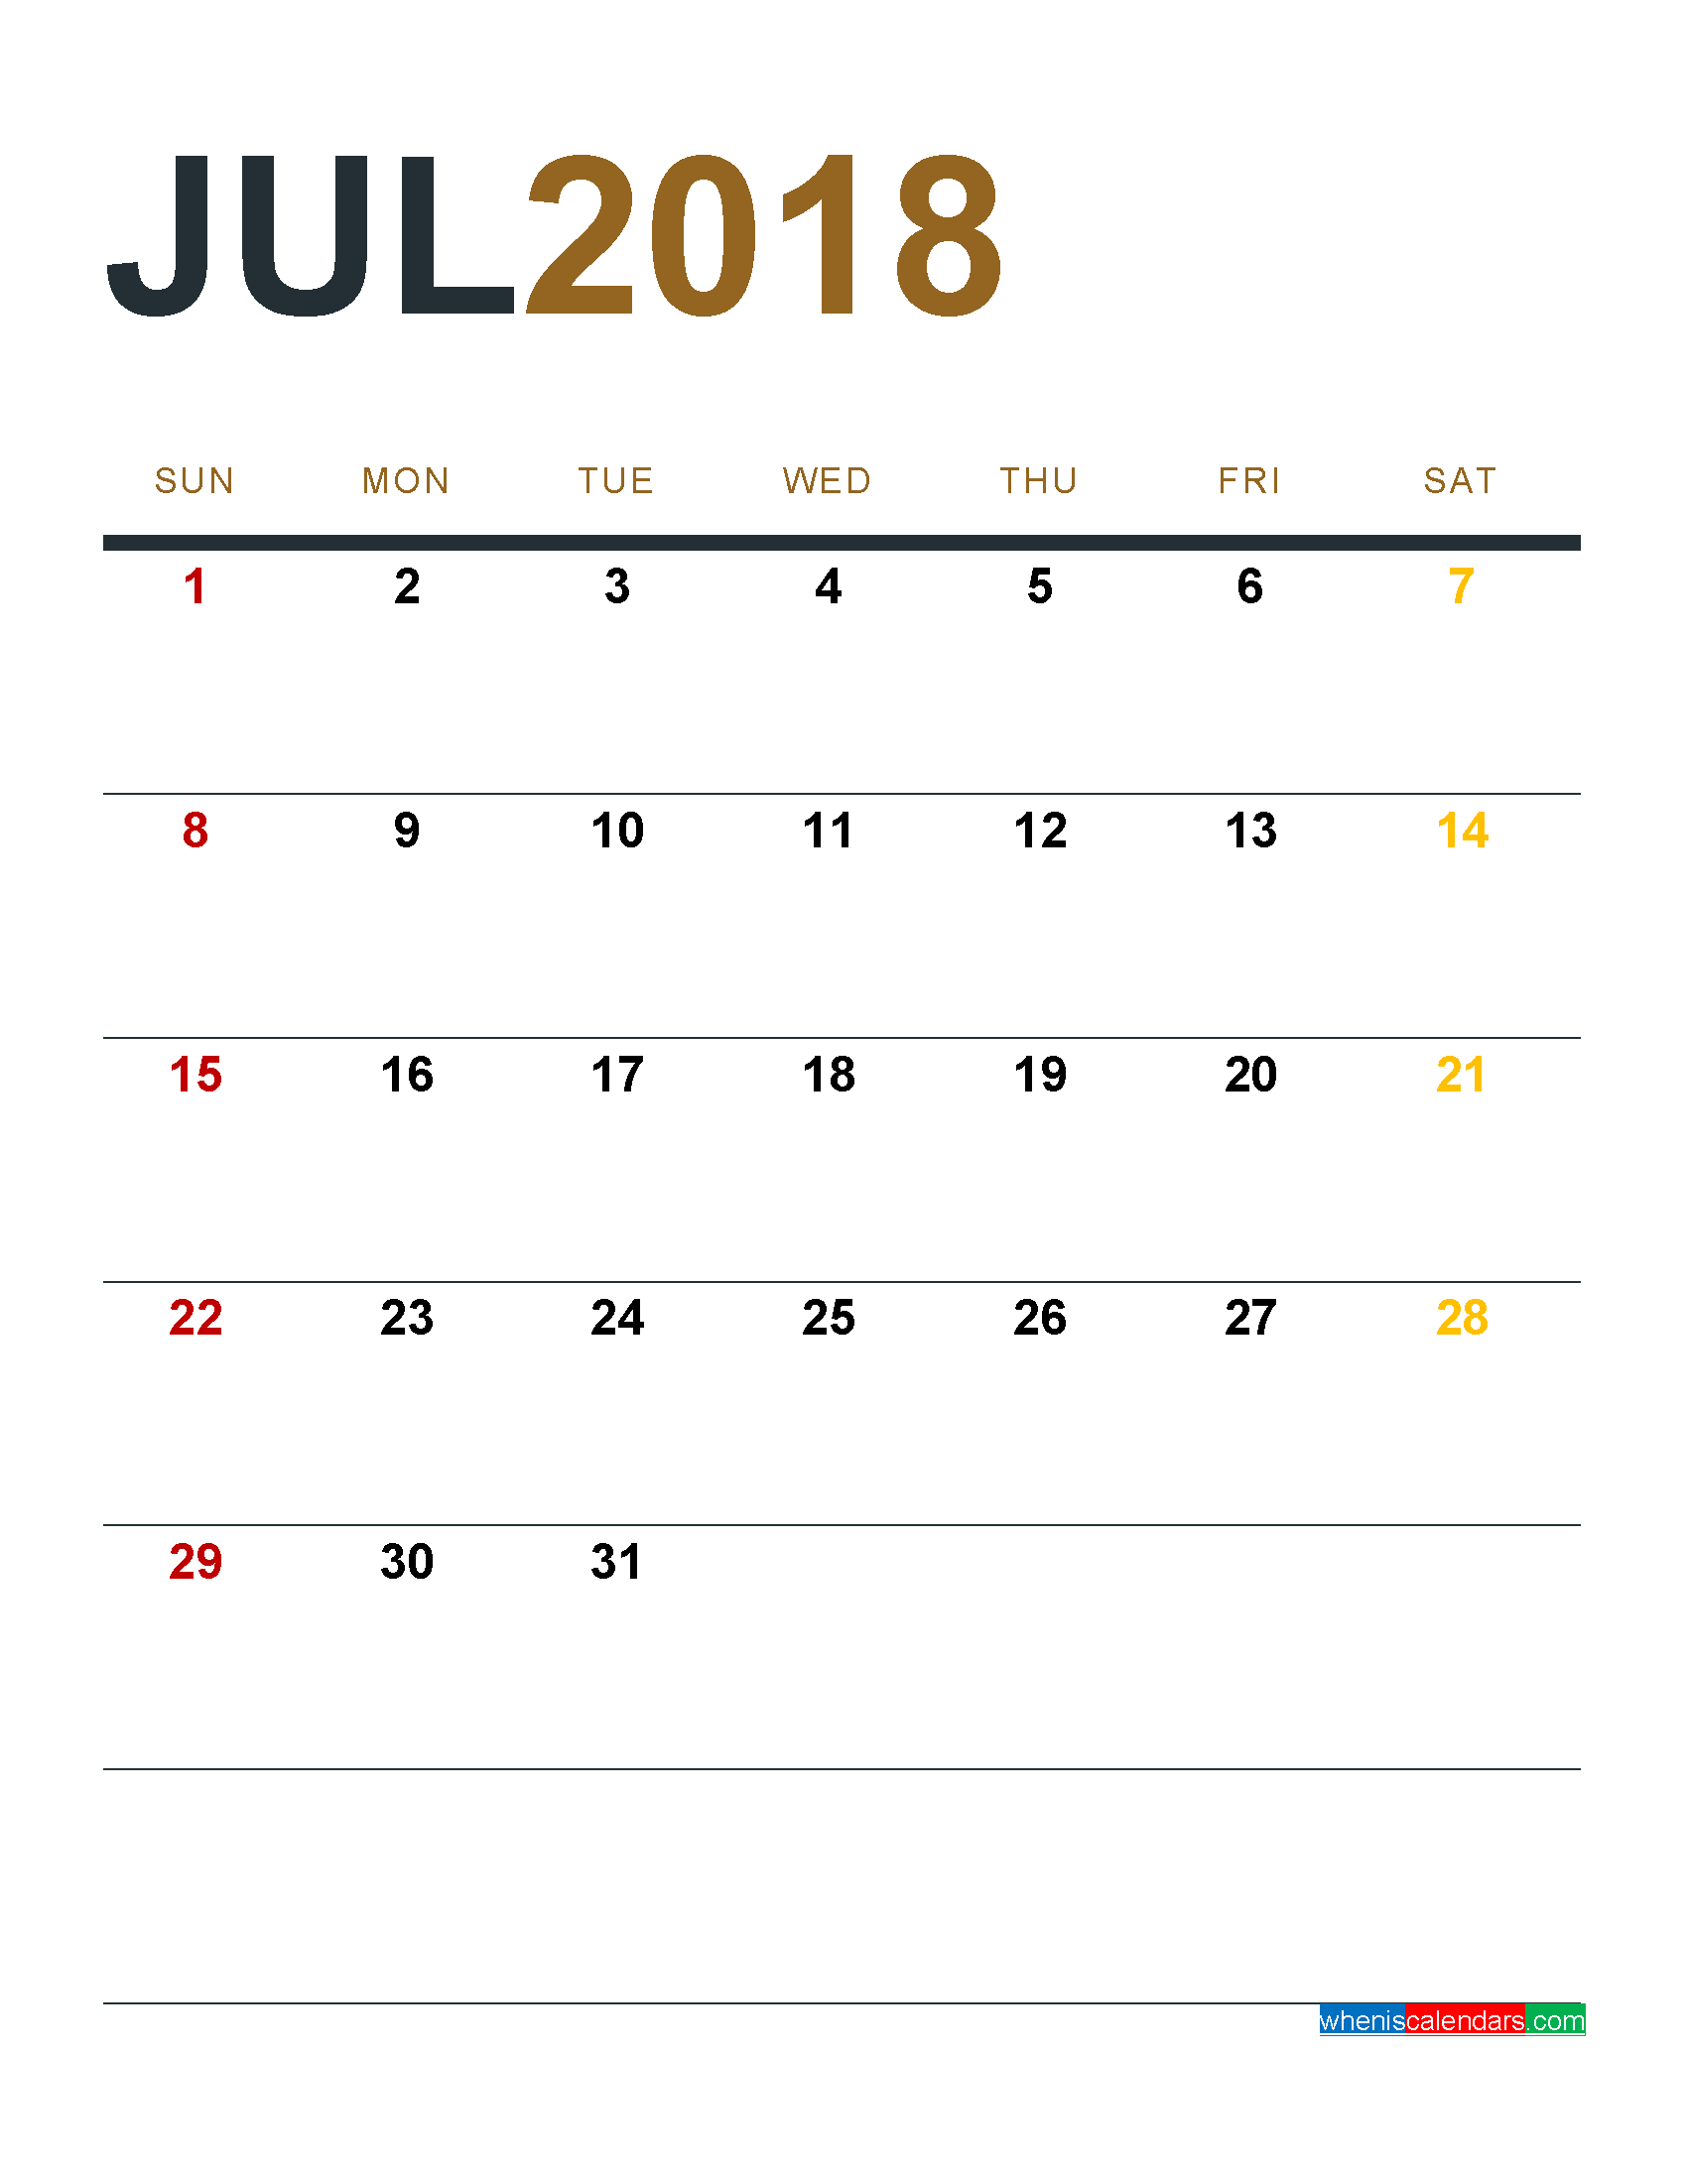 july 2018 calendar printable as pdf and image 1 month 1 page 2018